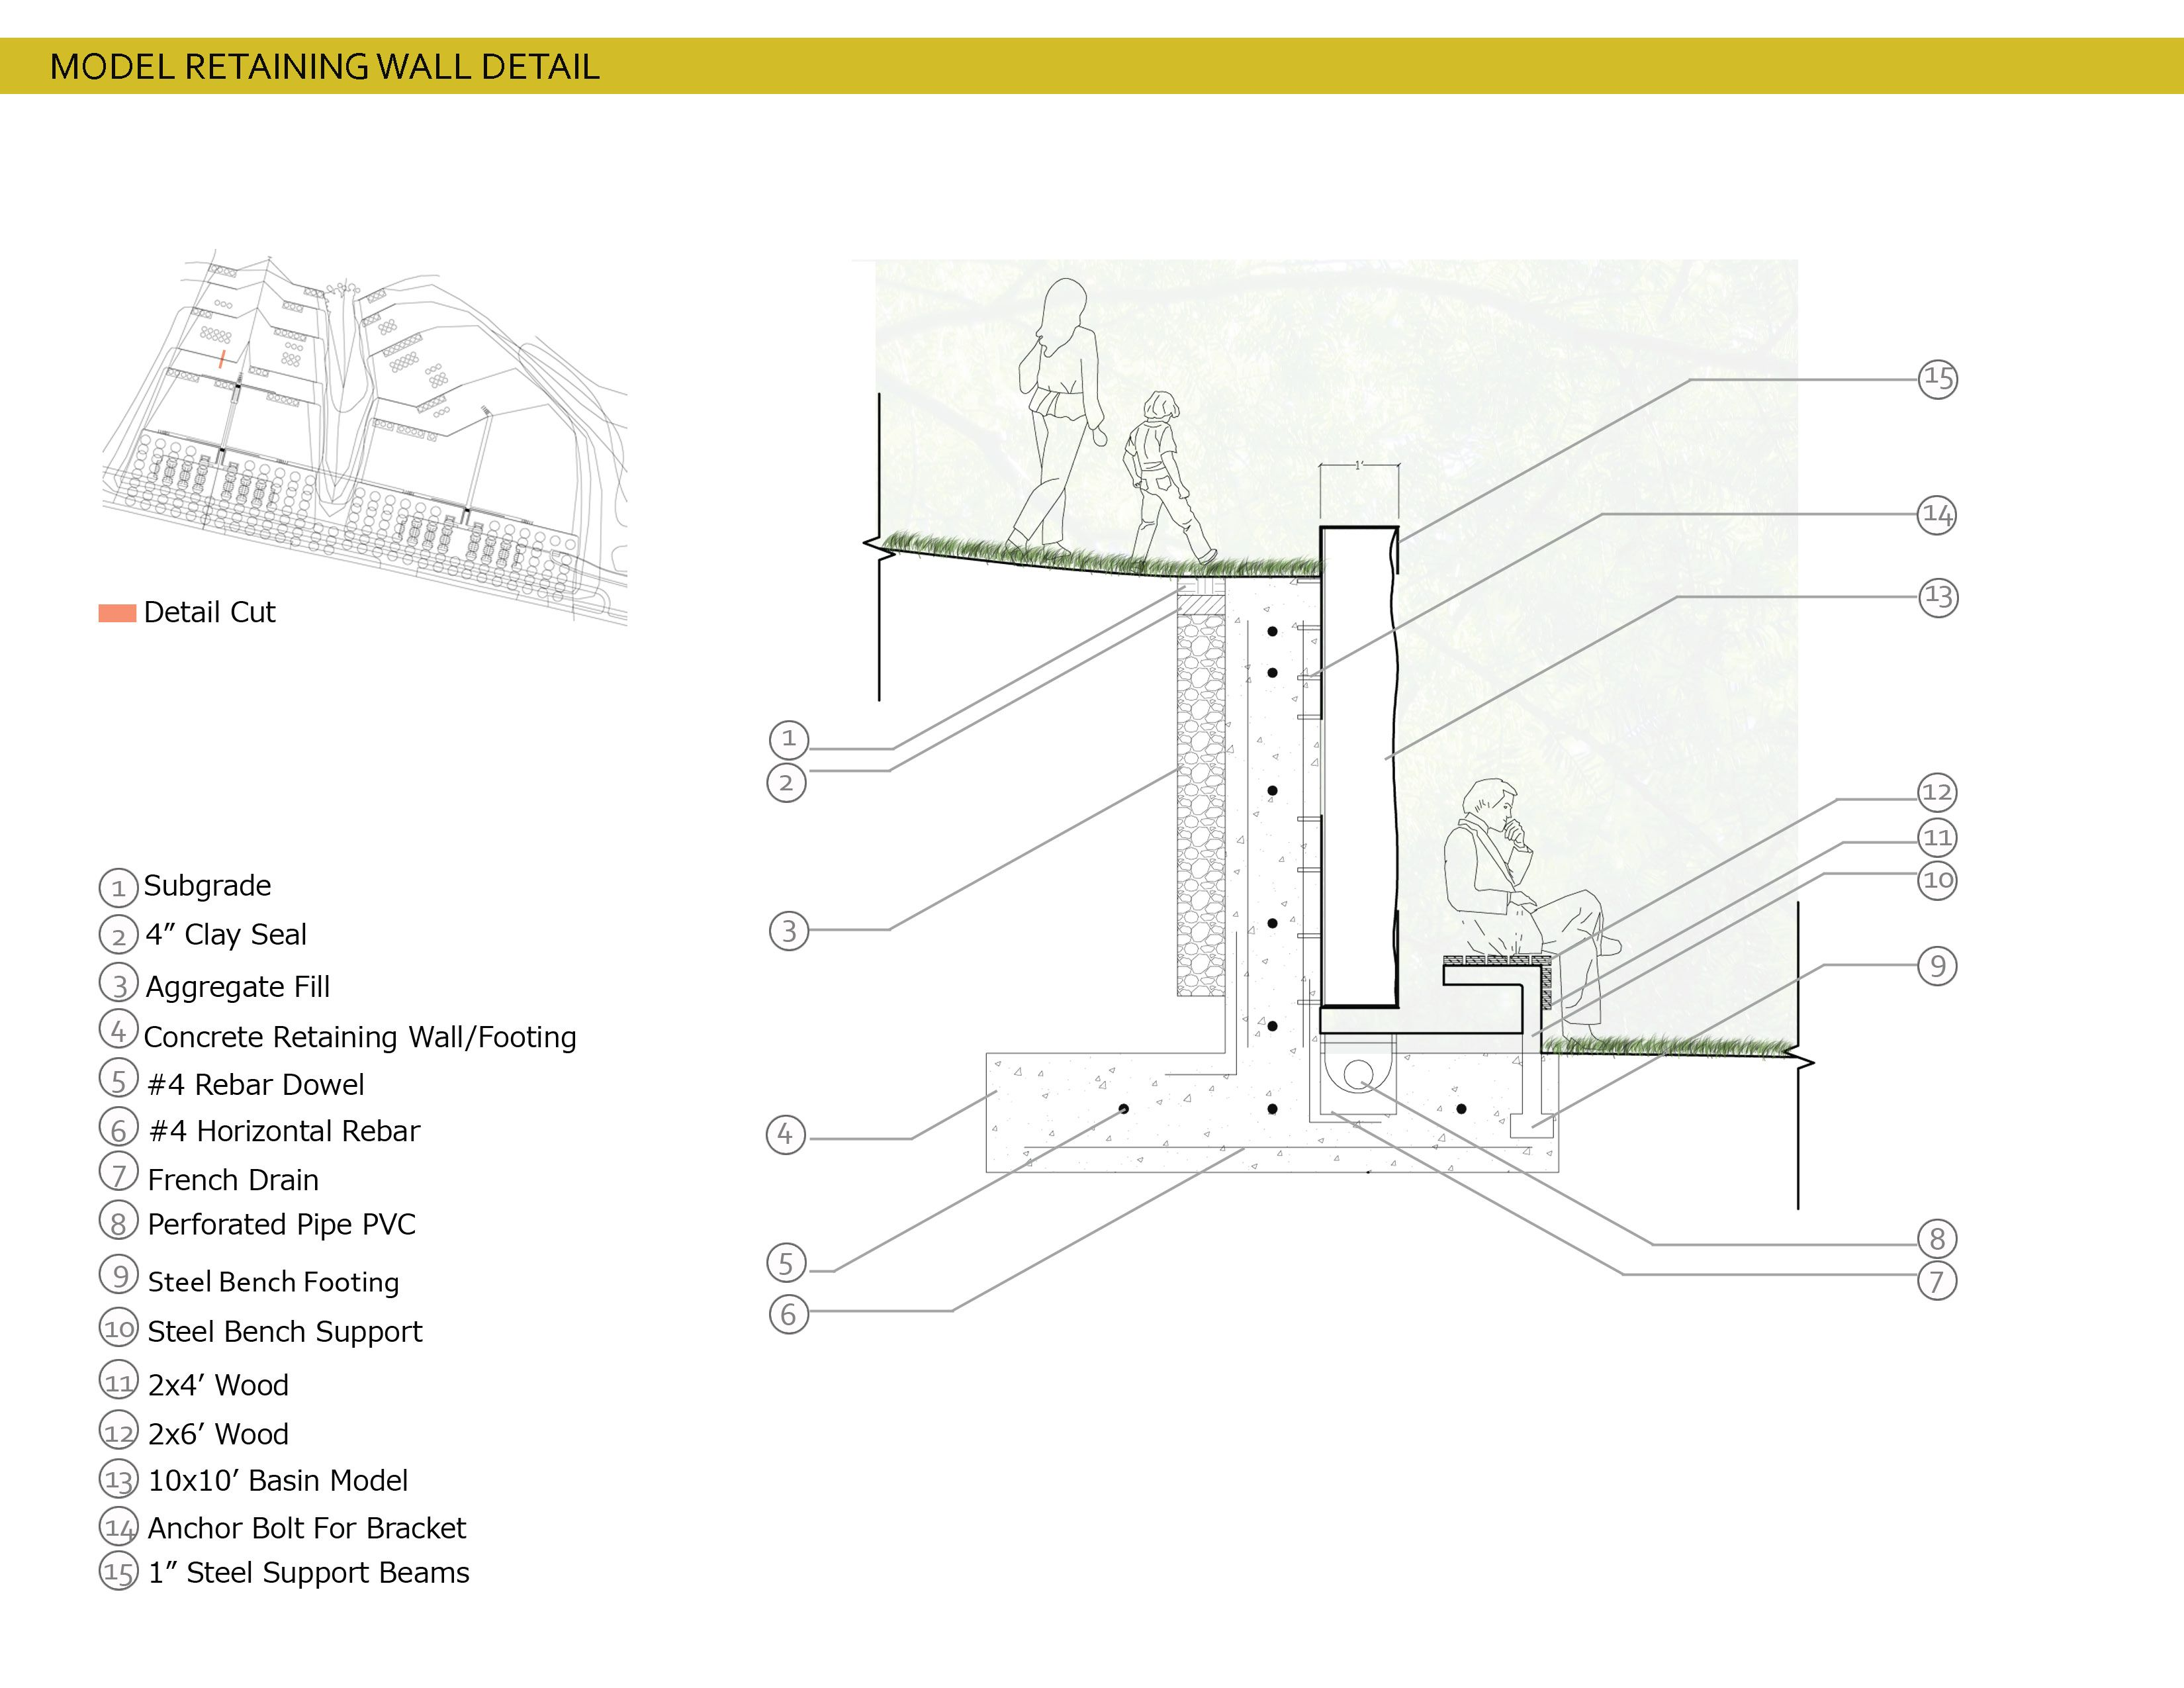 Model Retaining Wall Detail Proposal For Park By Mississippi River Concrete Retaining Walls Retaining Wall Detail